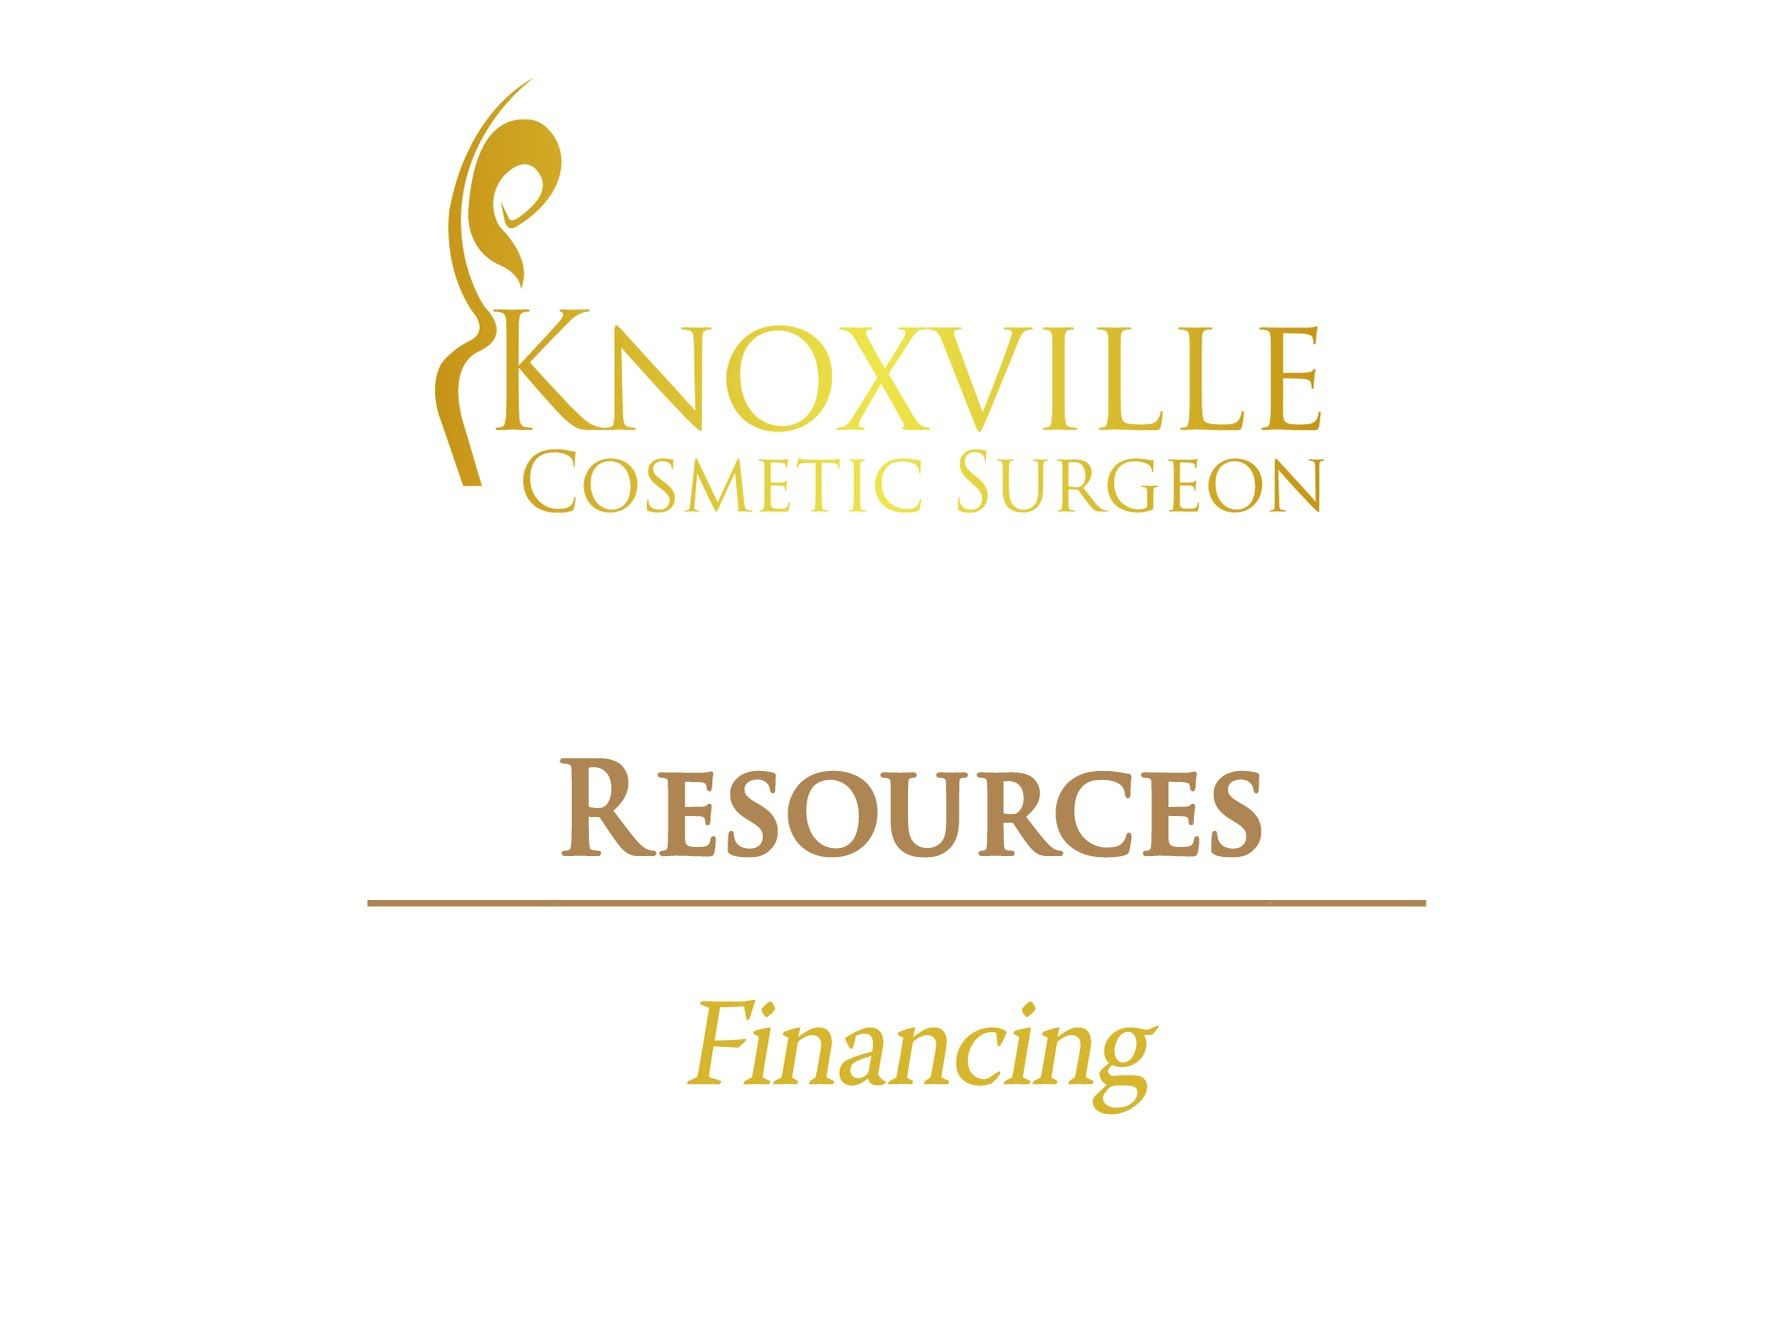 Knoxville cosmetic surgeon resources financing